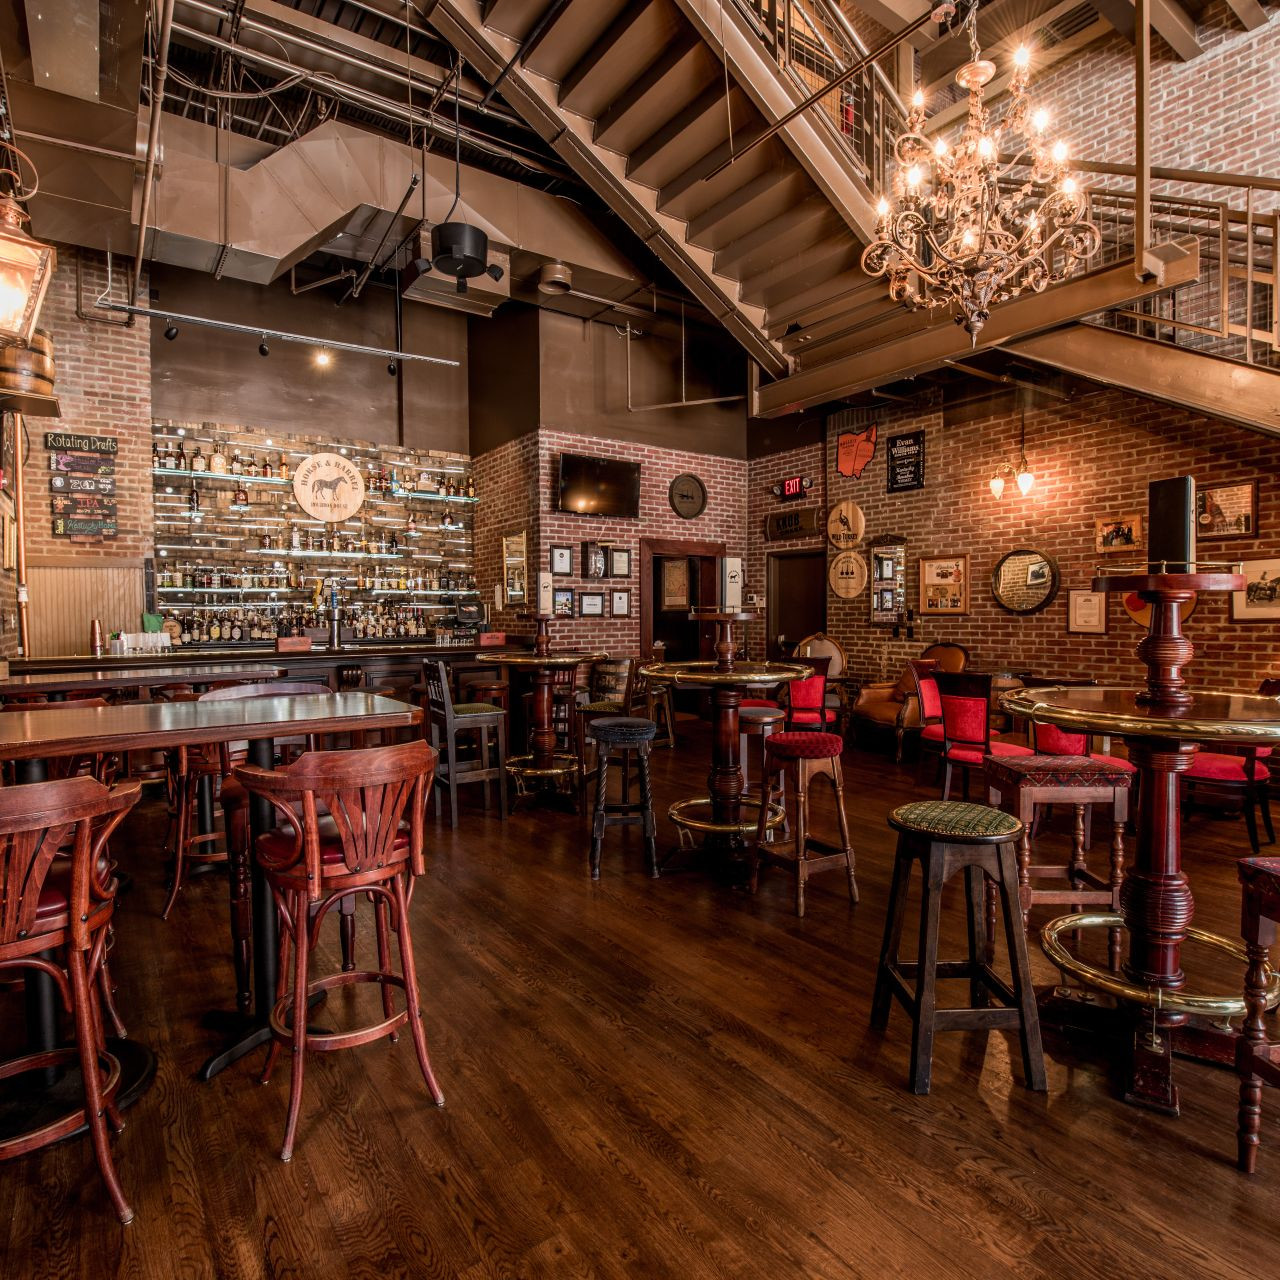 reward hardwood flooring prices of nicholsons tavern pub restaurant cincinnati oh opentable with regard to 25157235